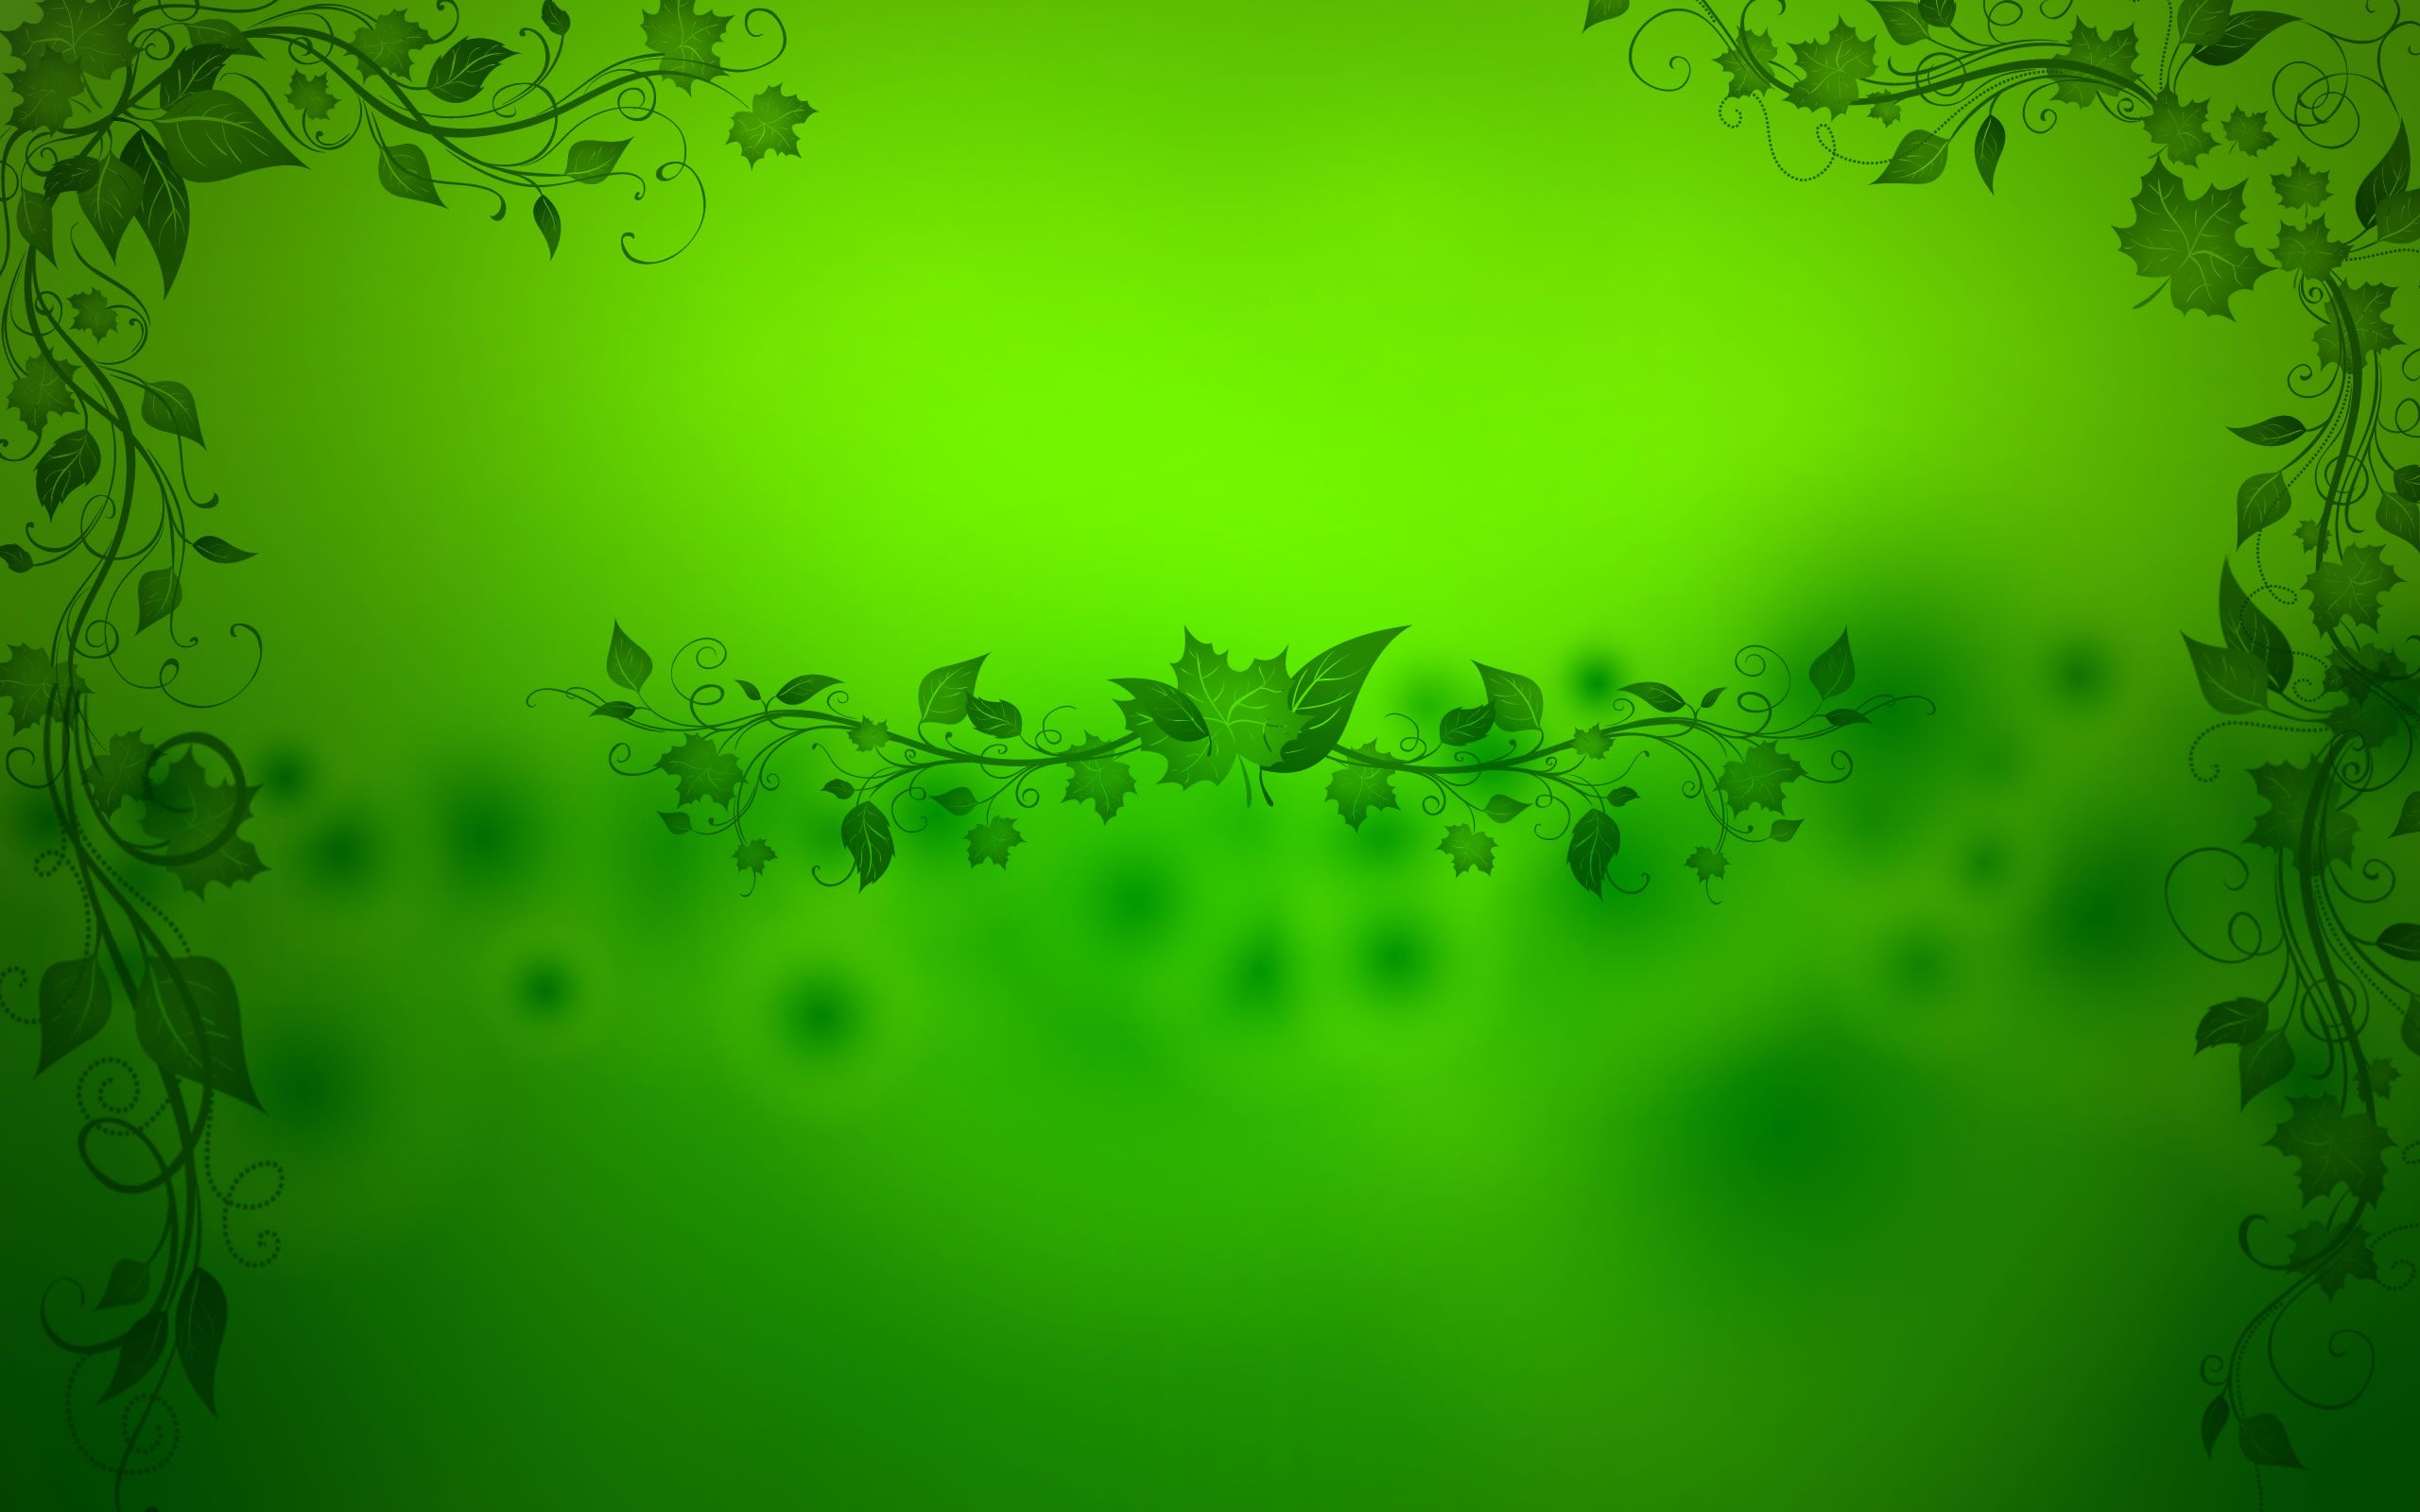 Green Wallpaper Dr Odd Green Wallpaper Cool Backgrounds Wallpapers Cool Wallpaper